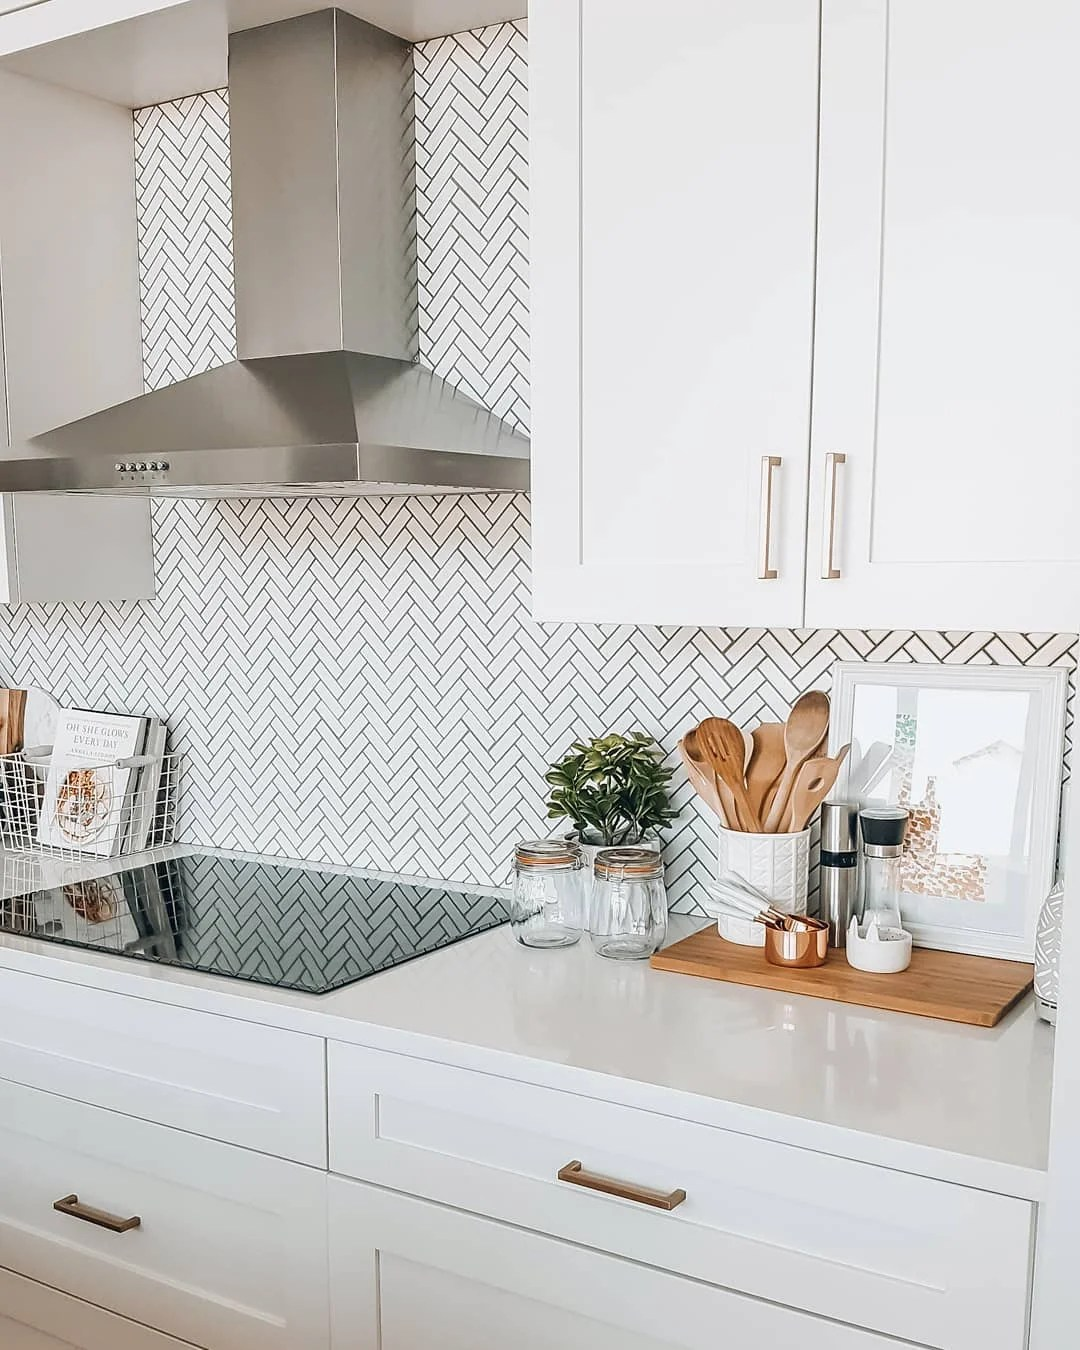 9 Brilliant Backsplash Ideas To Transform Your Kitchen Wayfair